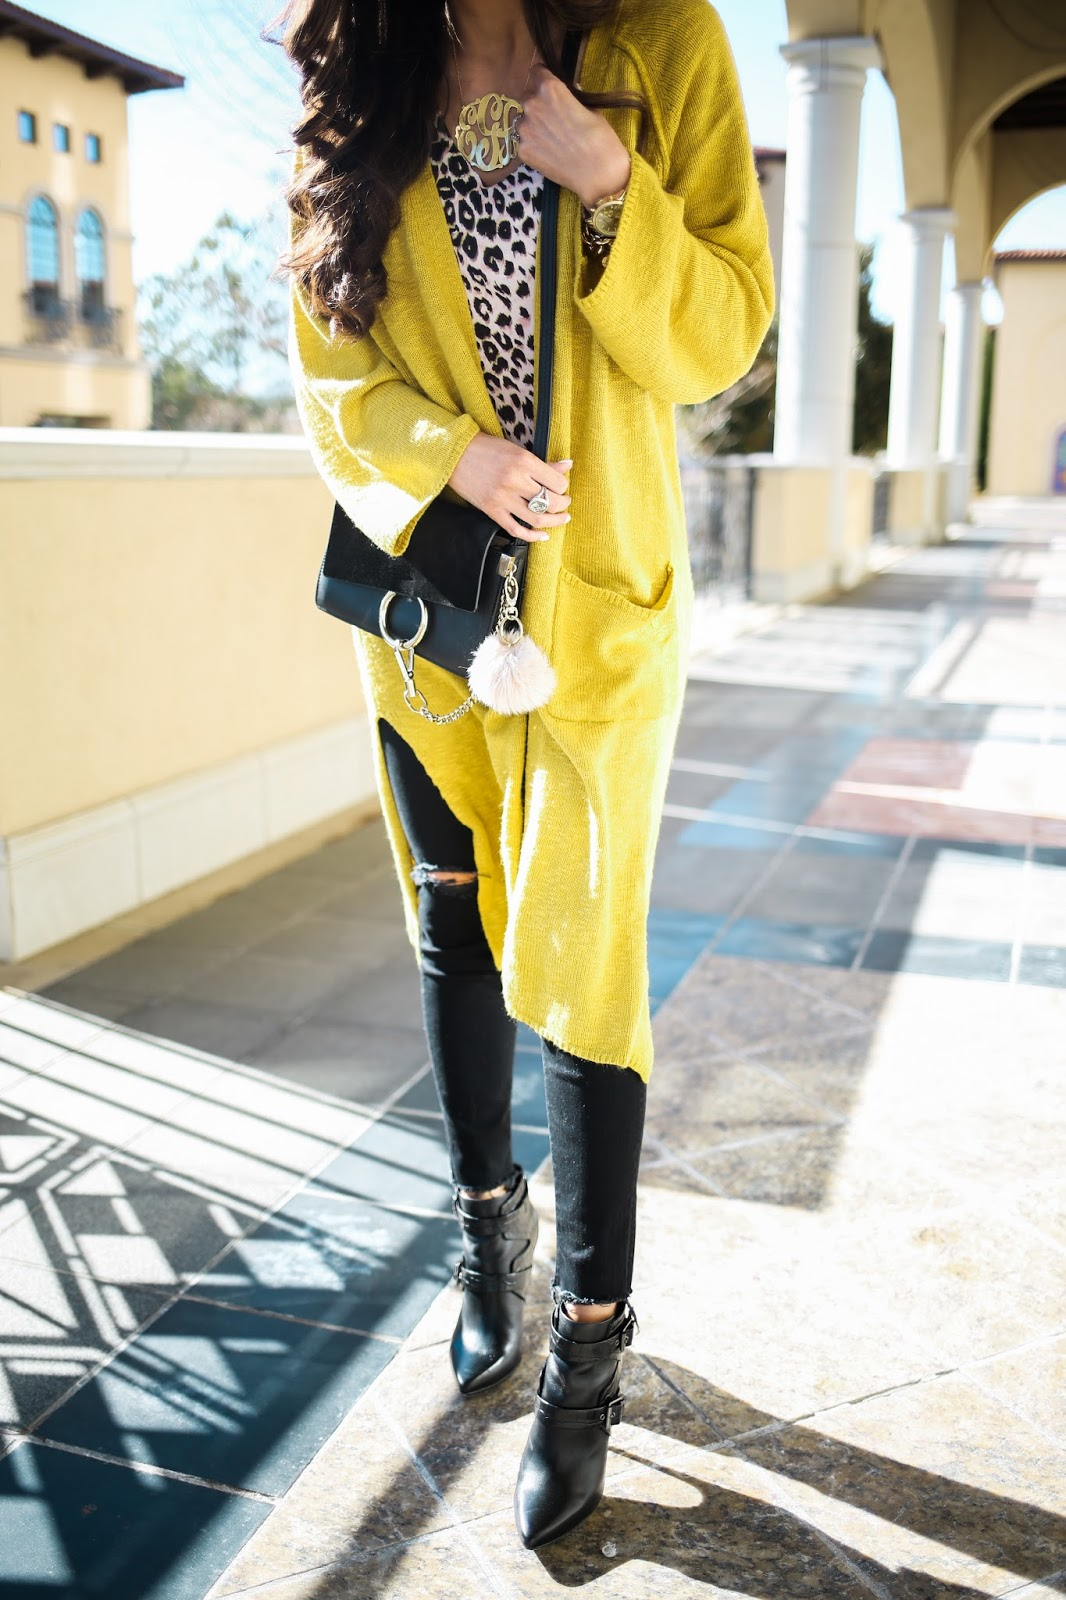 chic wish yellow cardigan, david yurman albion ring prasiolite, black chloe faye bag, small black chloe faye bag, gold monogram necklace oversized love always, topshop tank top, topshop camo leopard, mother denim black ripped, emily gemma, the sweetest thing blog, BCBG booties black, black ray ban aviators, tulsa fashion blog, daveid